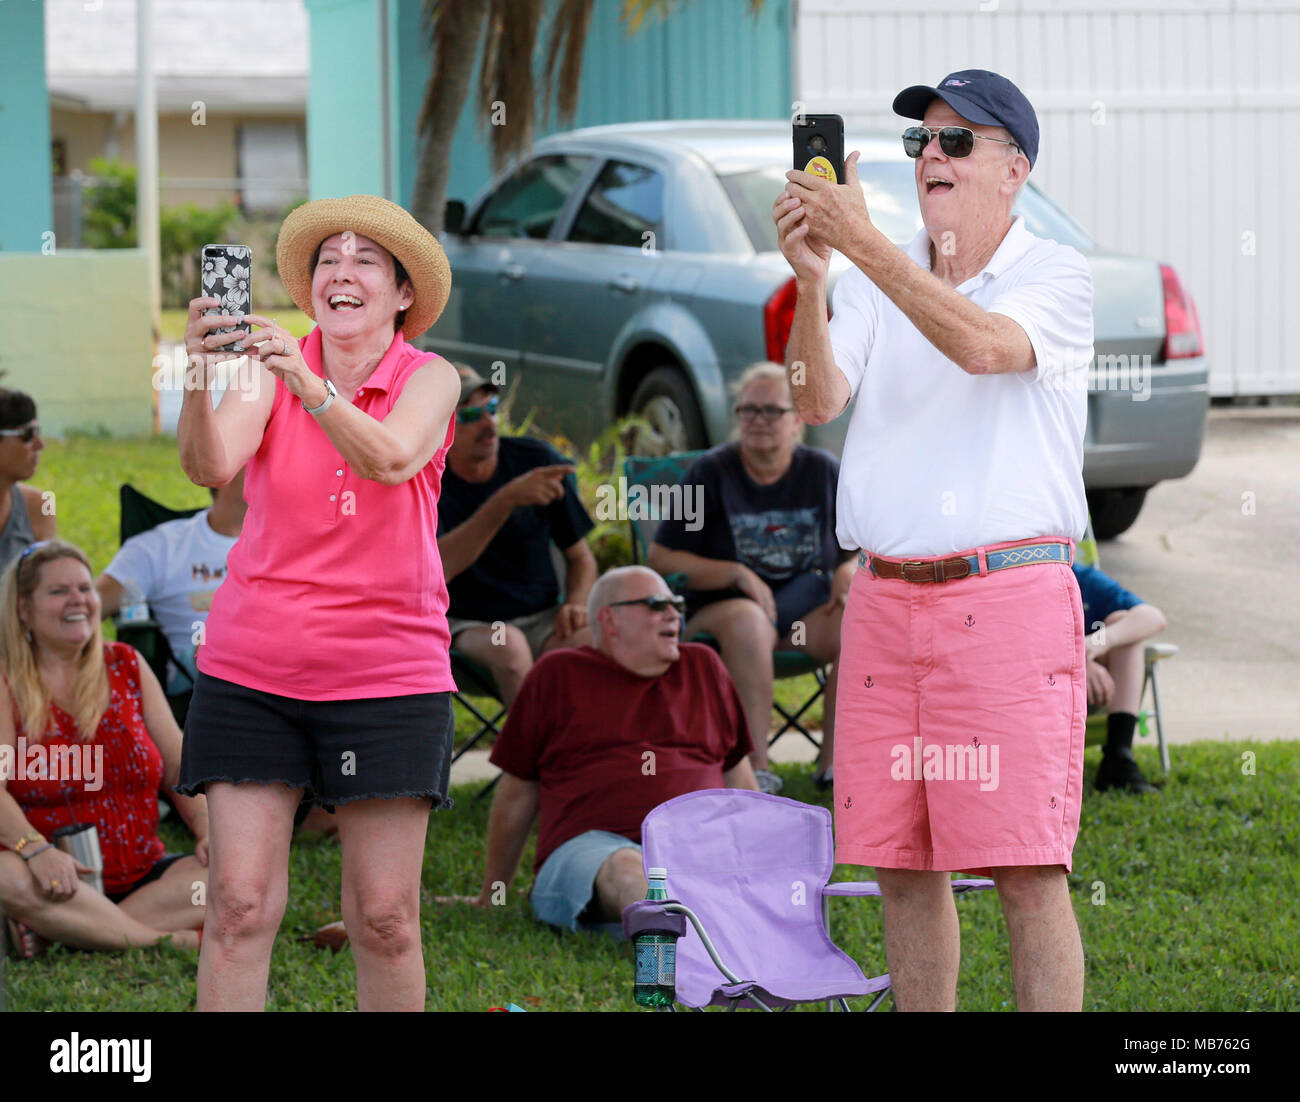 Florida, USA. 7th Apr, 2018. Onlookers watch as the North Palm Beach Heritage Day parade passes by on Saturday, April 7, 2018. The Parade featured bands, civic groups, clubs and organizations from the area. It traveled from North Palm Beach Village Hall north on Eastwind Drive, west on Lighthouse Drive, and south on Anchorage Drive, to end at Anchorage Park. The Heritage Festival at Anchorage Park featured a business expo, carnival rides, food and drinks, games, musical entertainment, a cornhole tournament, and more. Credit: Bruce R. Bennett/The Palm Beach Post/ZUMA Wire/Alamy Live News - Stock Image